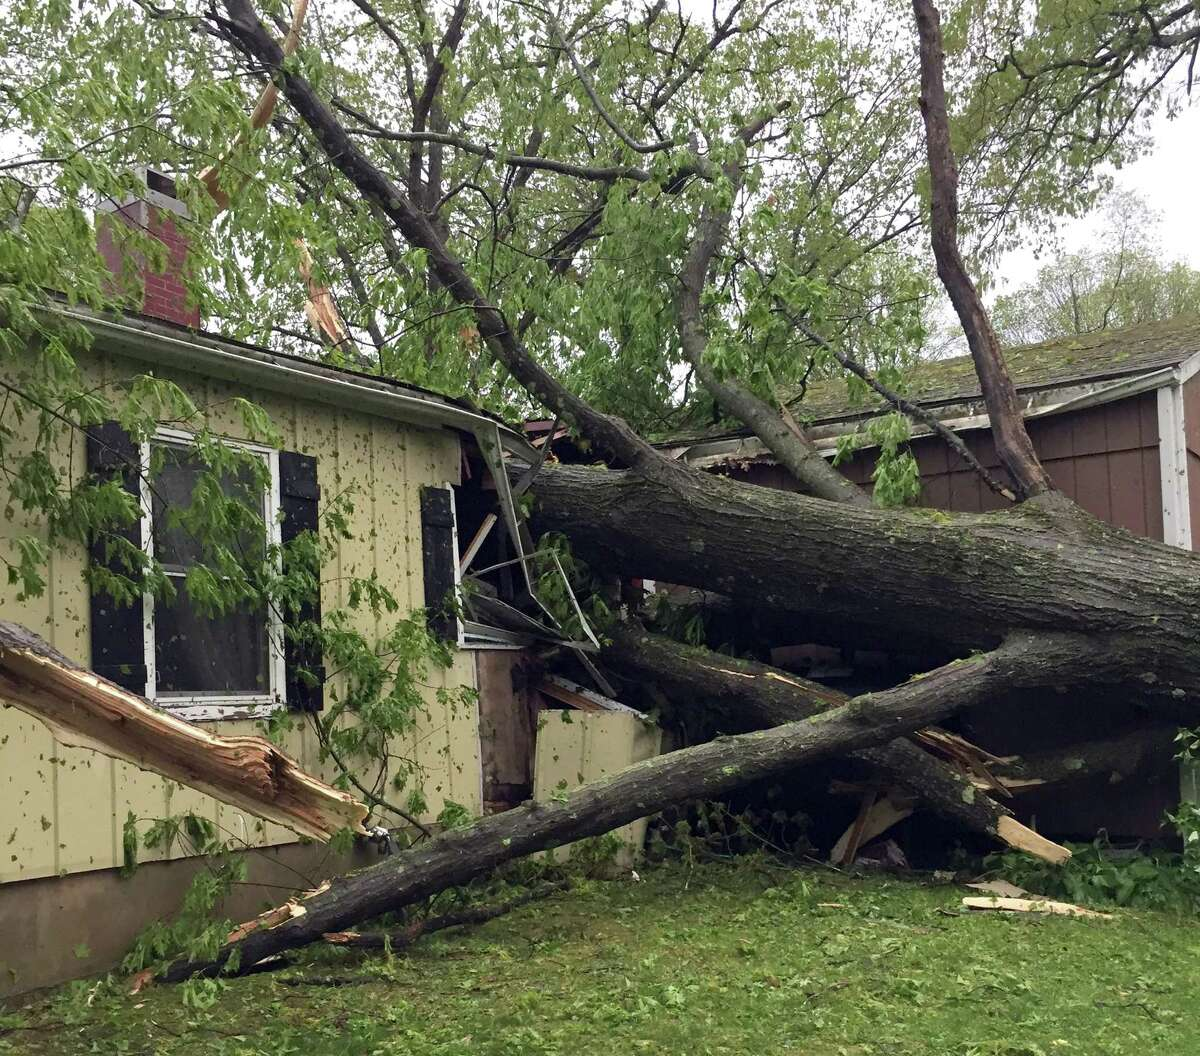 A tree smashes through a home on Allen Road in Brookfield during Tuesday's storm, May 15, 2018. Photo by David Fields.